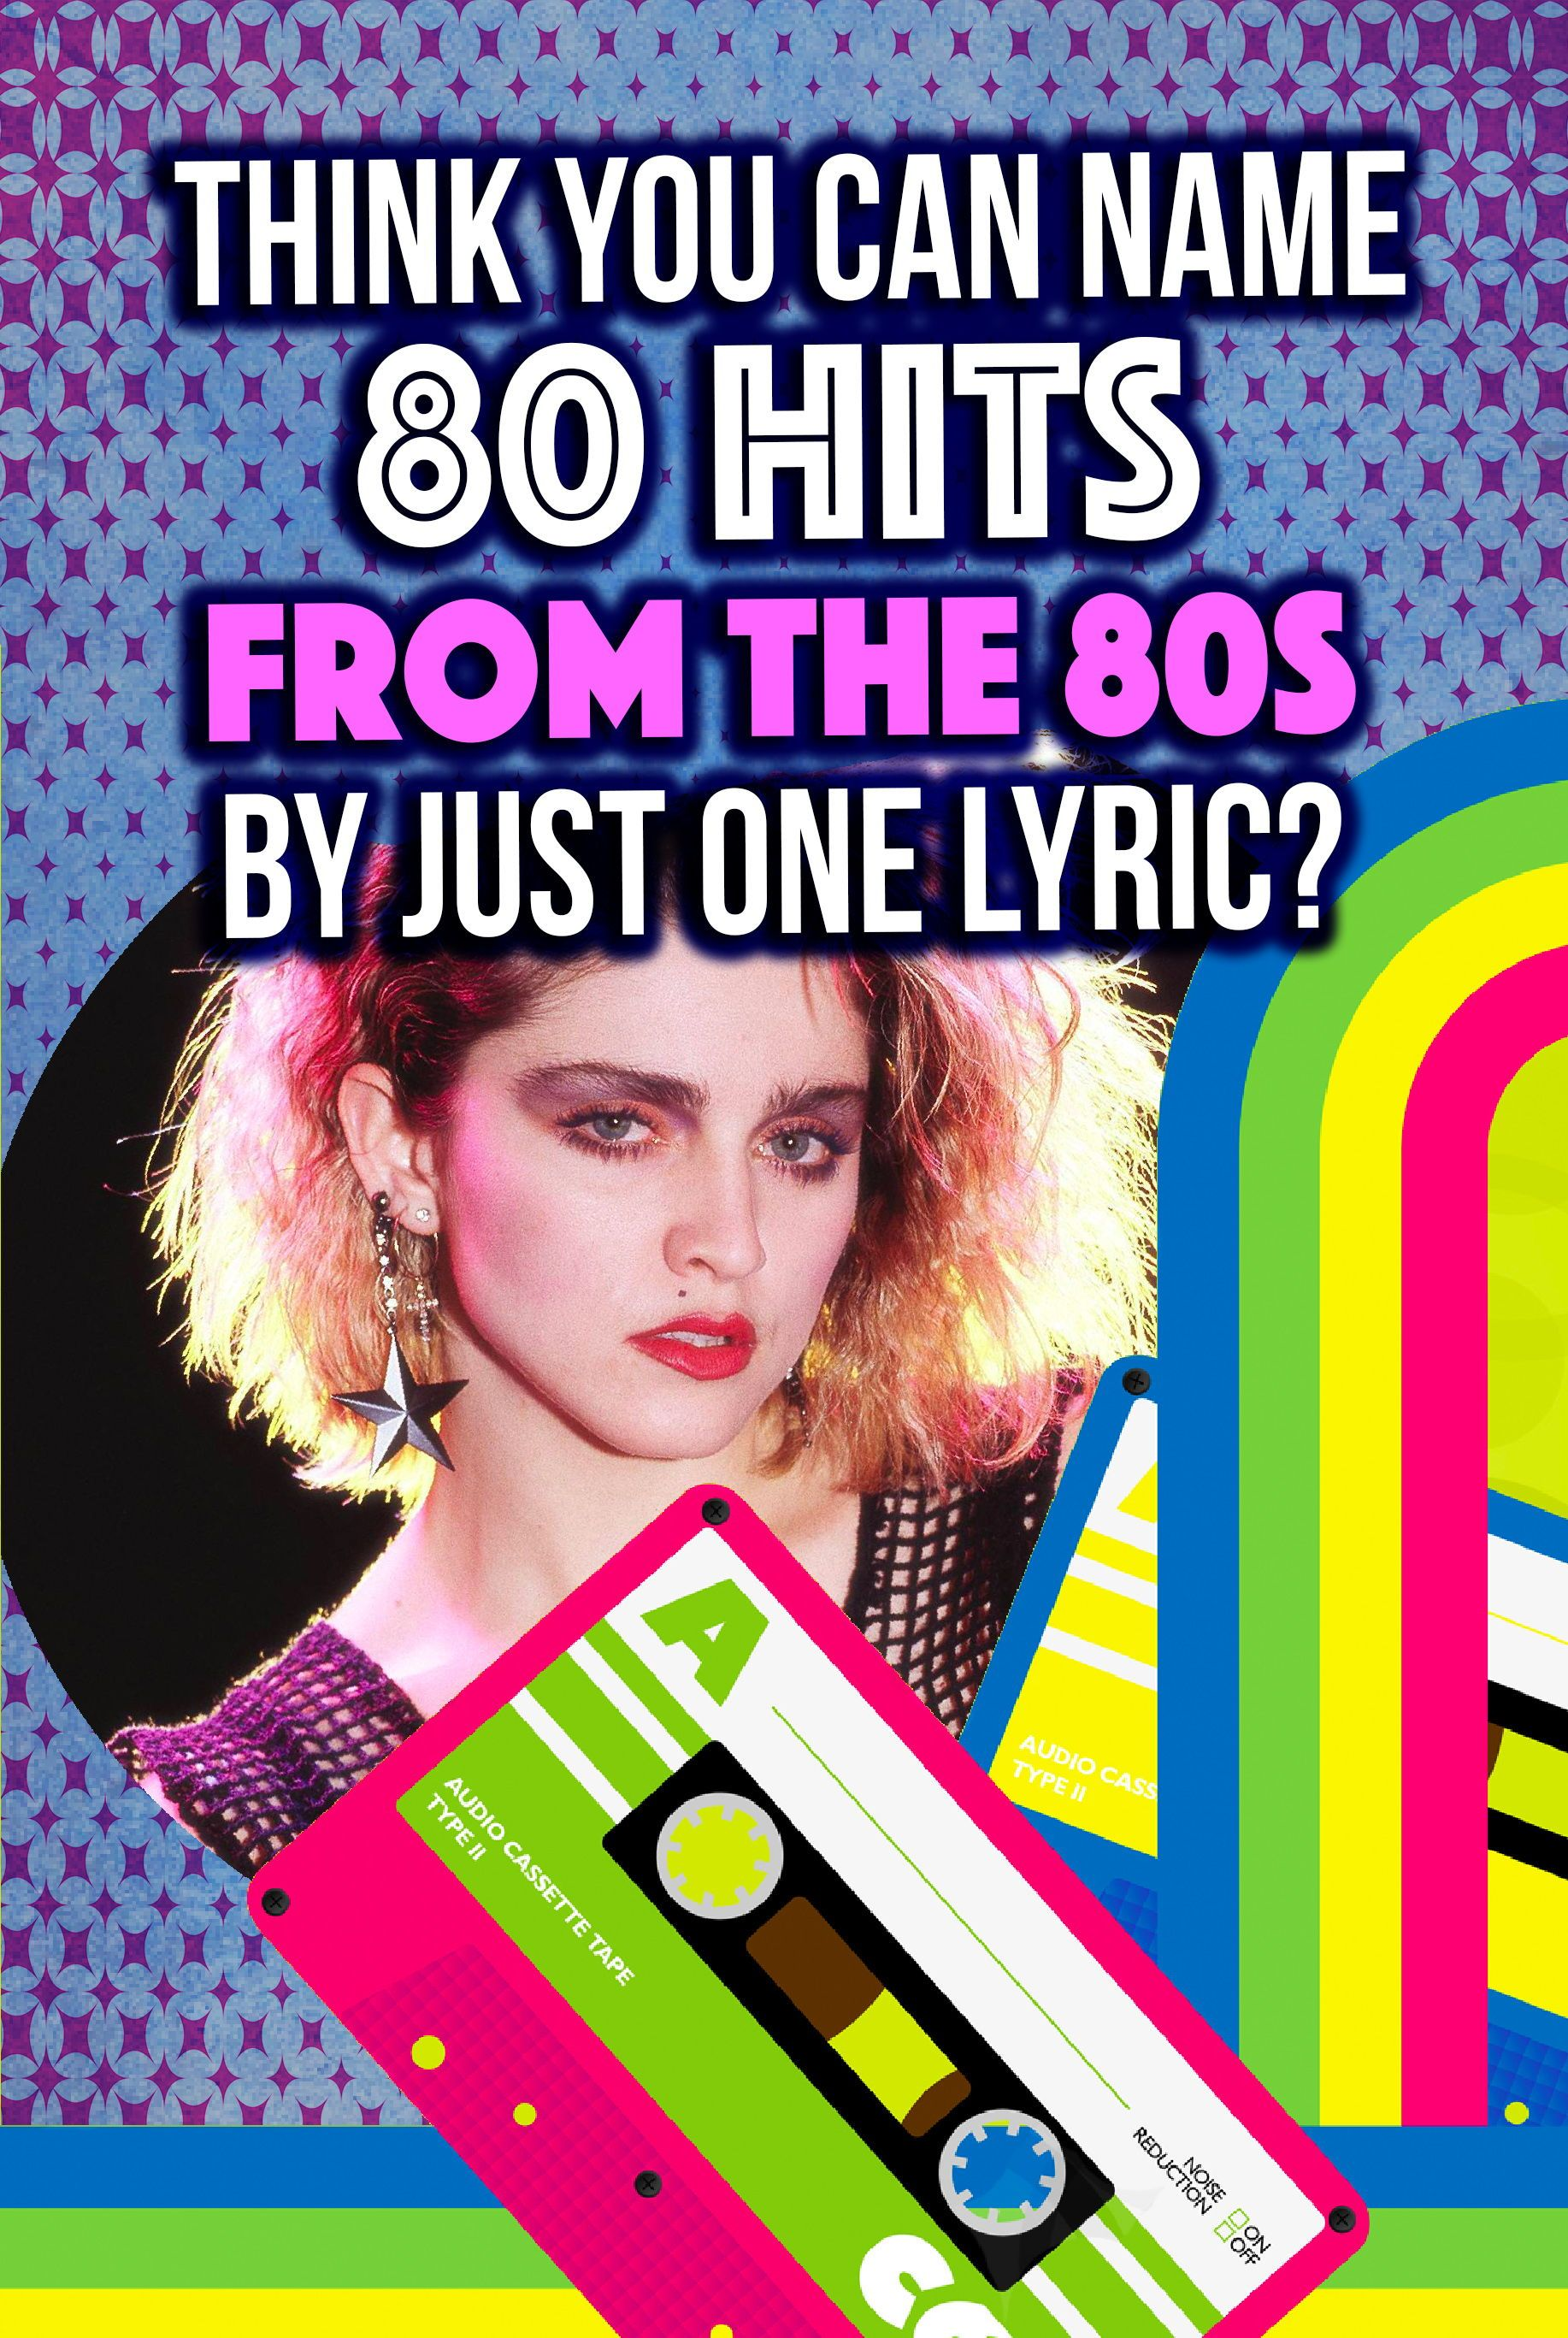 Quiz: Think You Can Name 80 Hits From The 80s By Just One